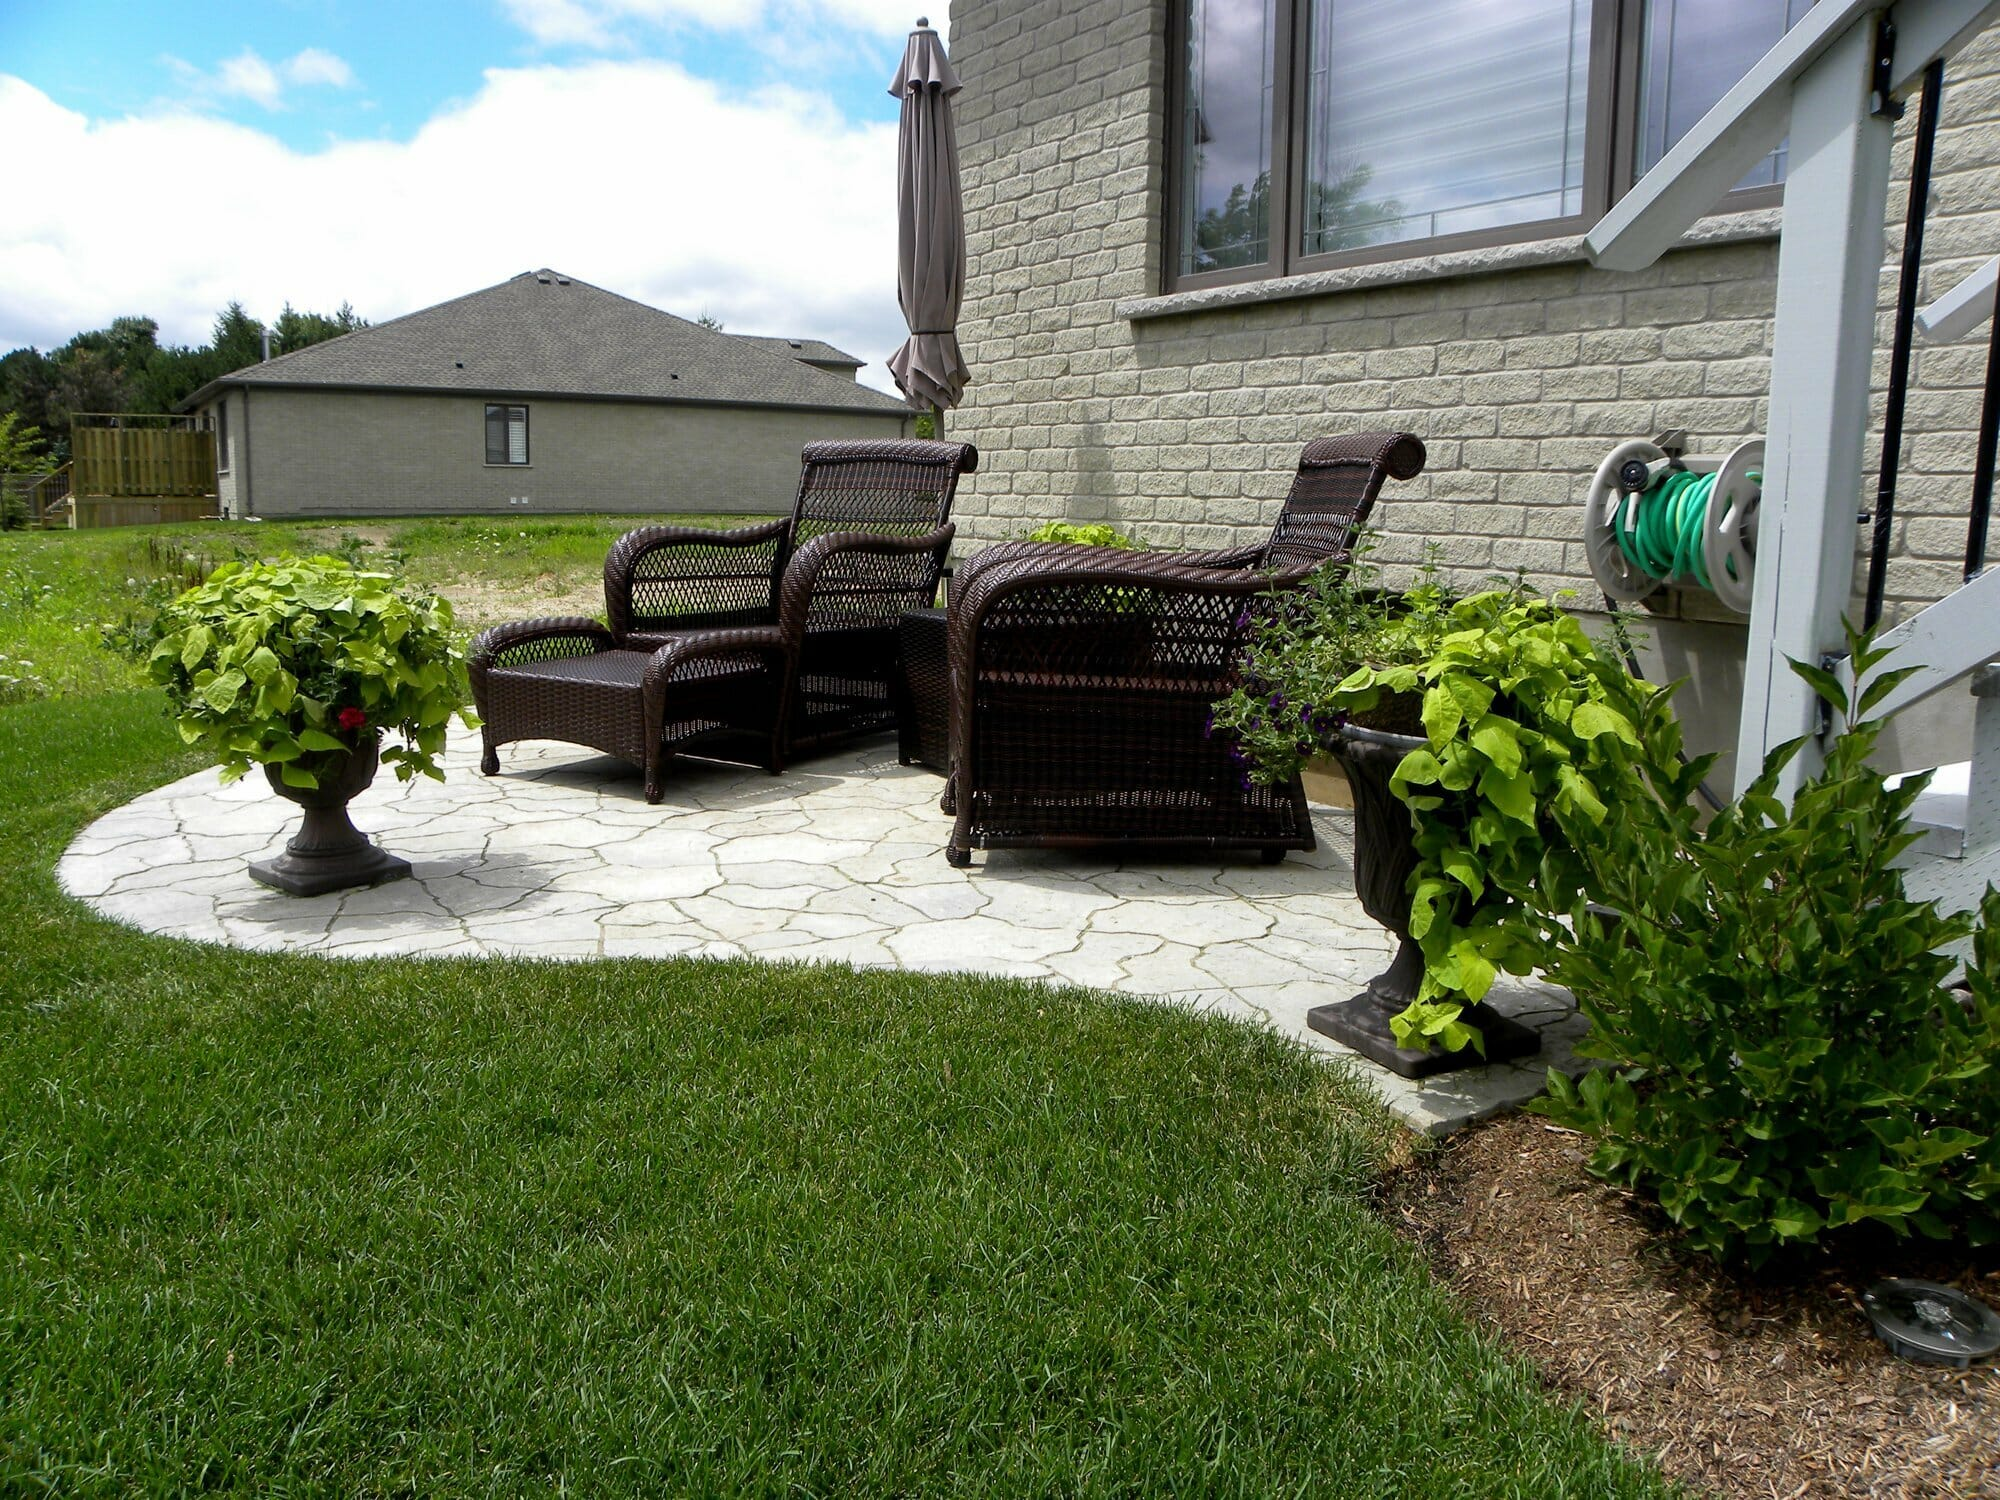 Small Interlock Patio with Planters - London, Ontario Landscaping & Custom Landscape Design